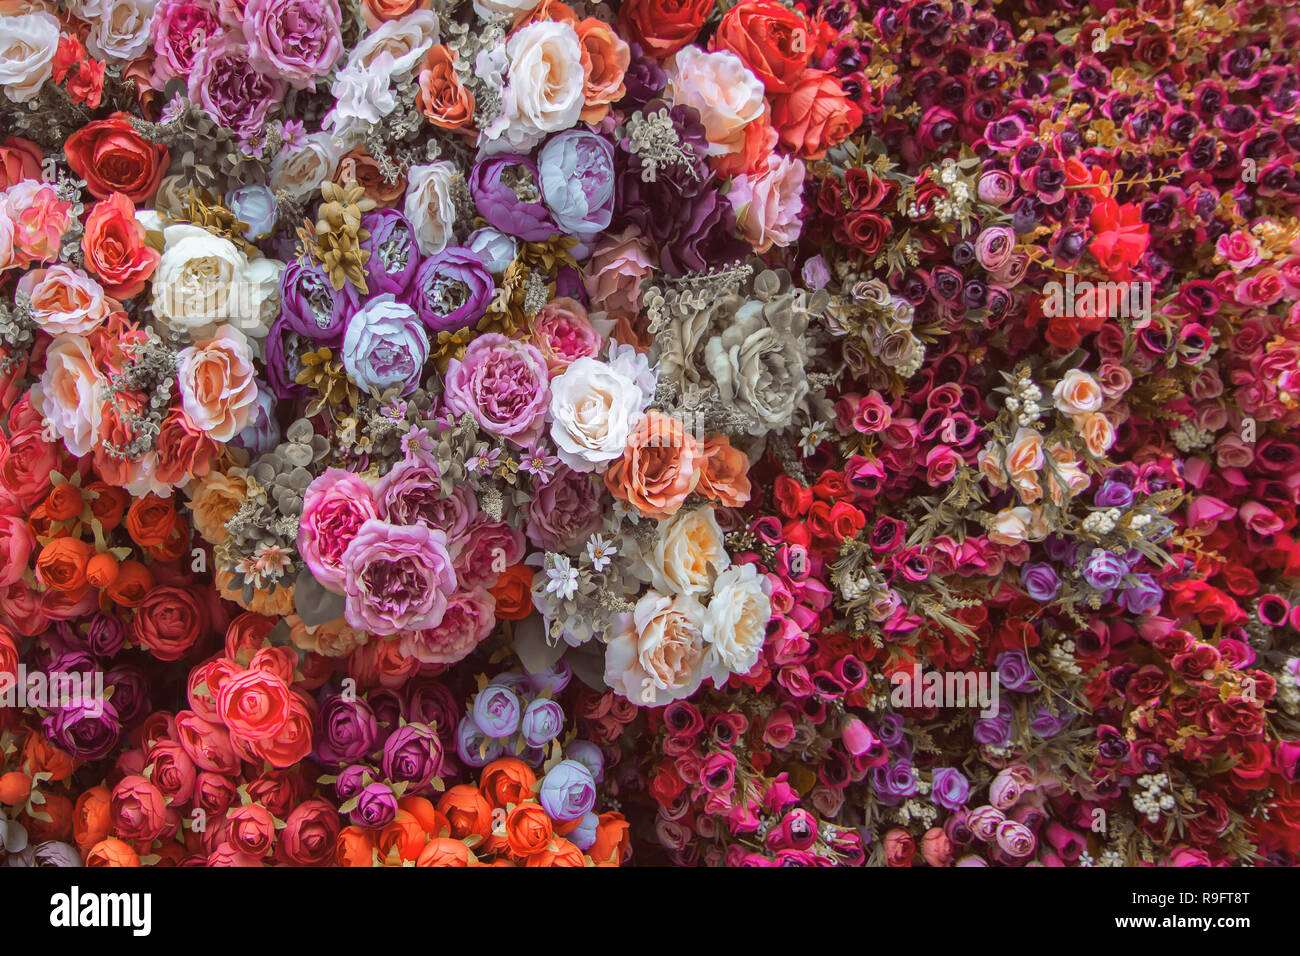 Floral Background Roses With Other Flowers Set Of Rustic Flowers